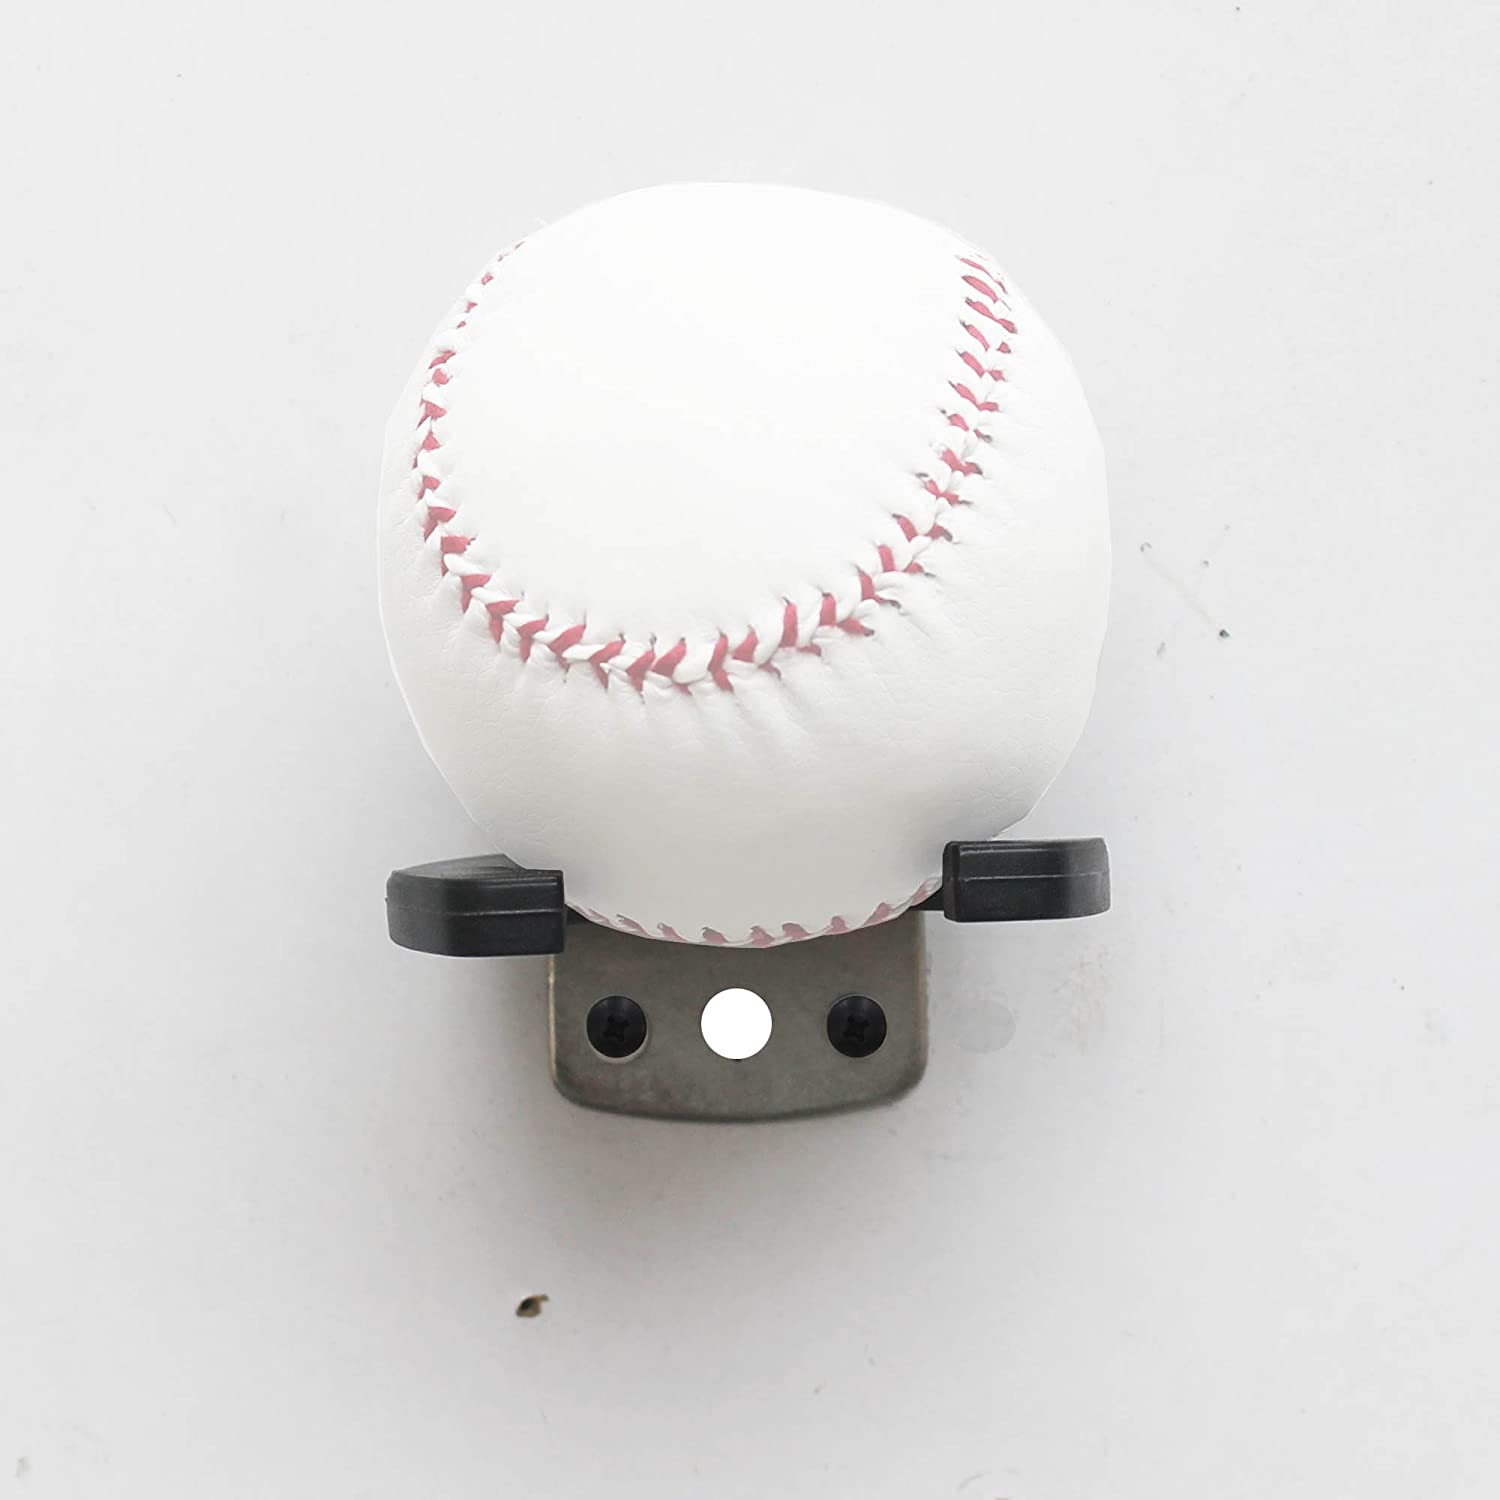 NO BALL Yi Ya Su YYST One Baseball Softball Display wall Mount Display Wall Rack Wall Holder